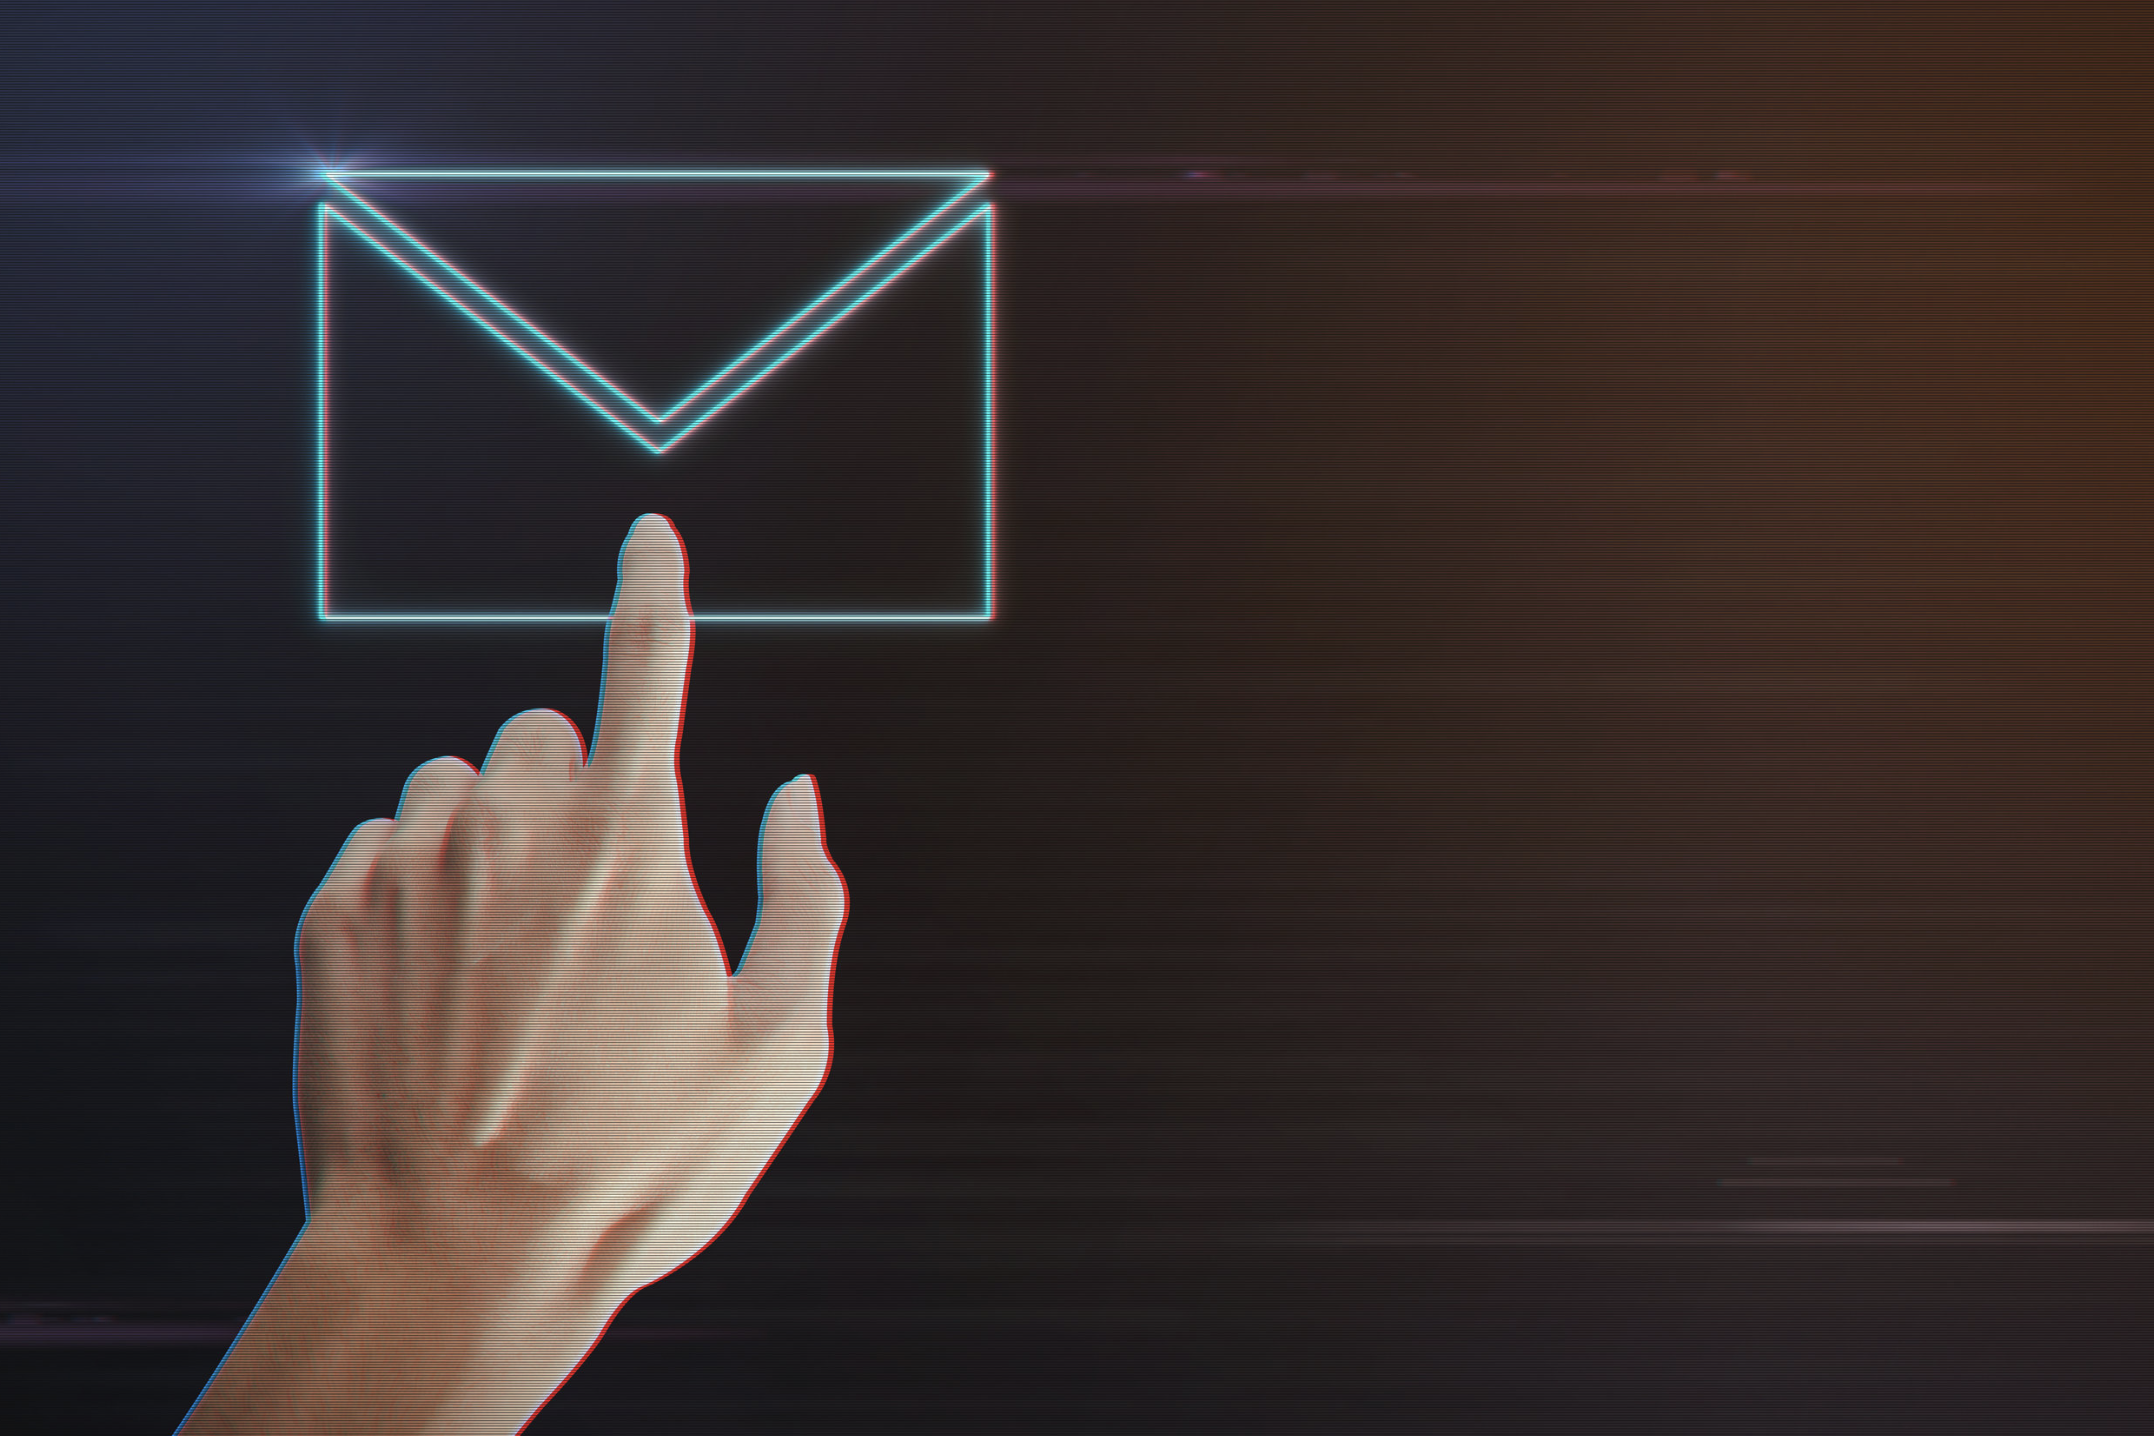 Email Marketing Automation - Successful marketing automation relies on triggering relevant and timely actions based on context. Use email marketing to connect with and engage existing contacts.